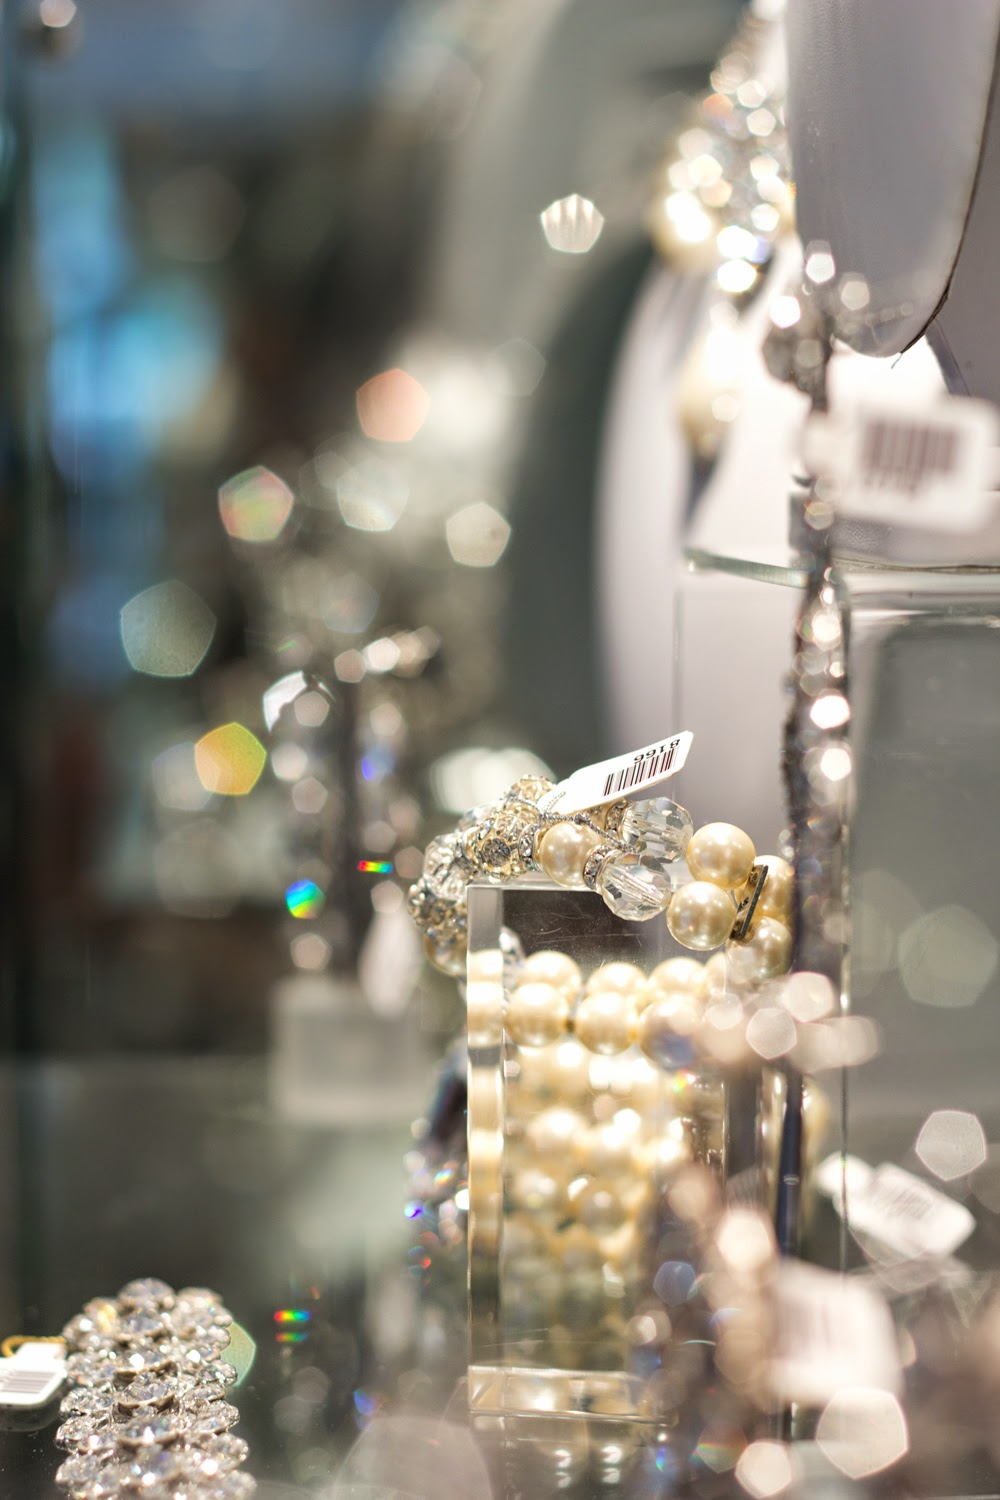 artemis-pop-up-jewellery-store-in-yorkville, statement-accessory-collections